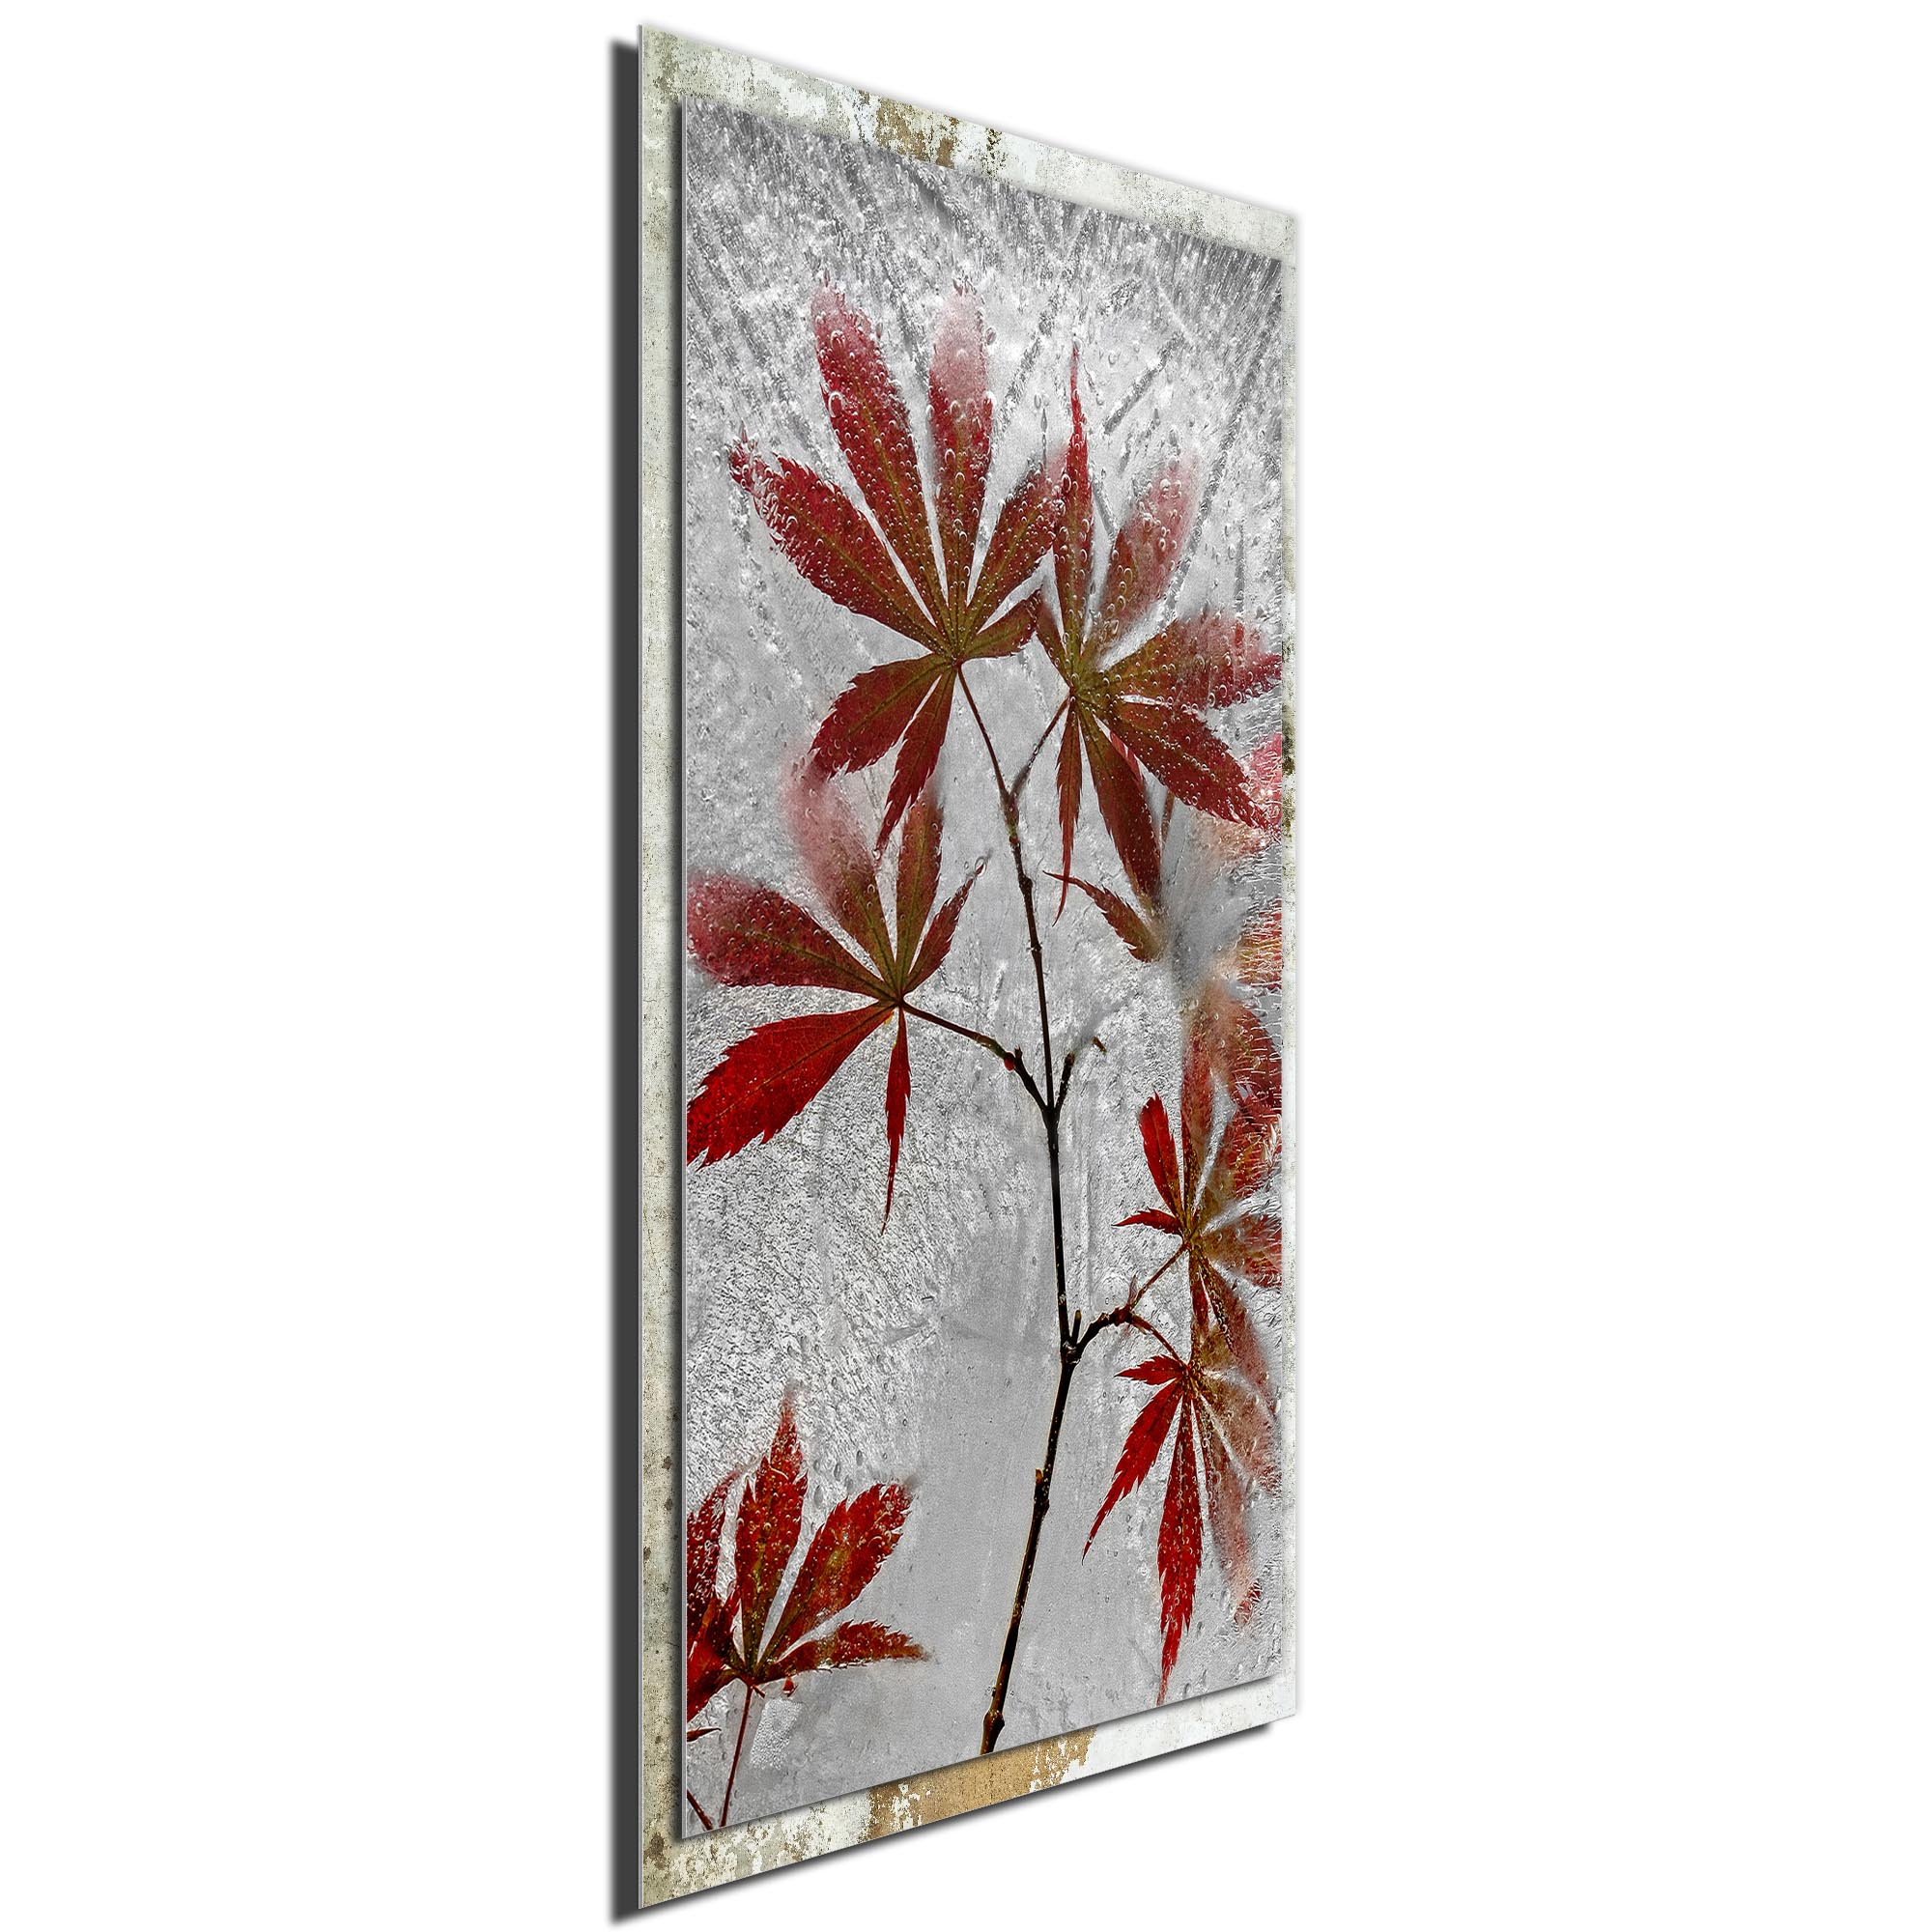 Red Maple by Secundino Losada - Modern Farmhouse Floral on Metal - Image 2